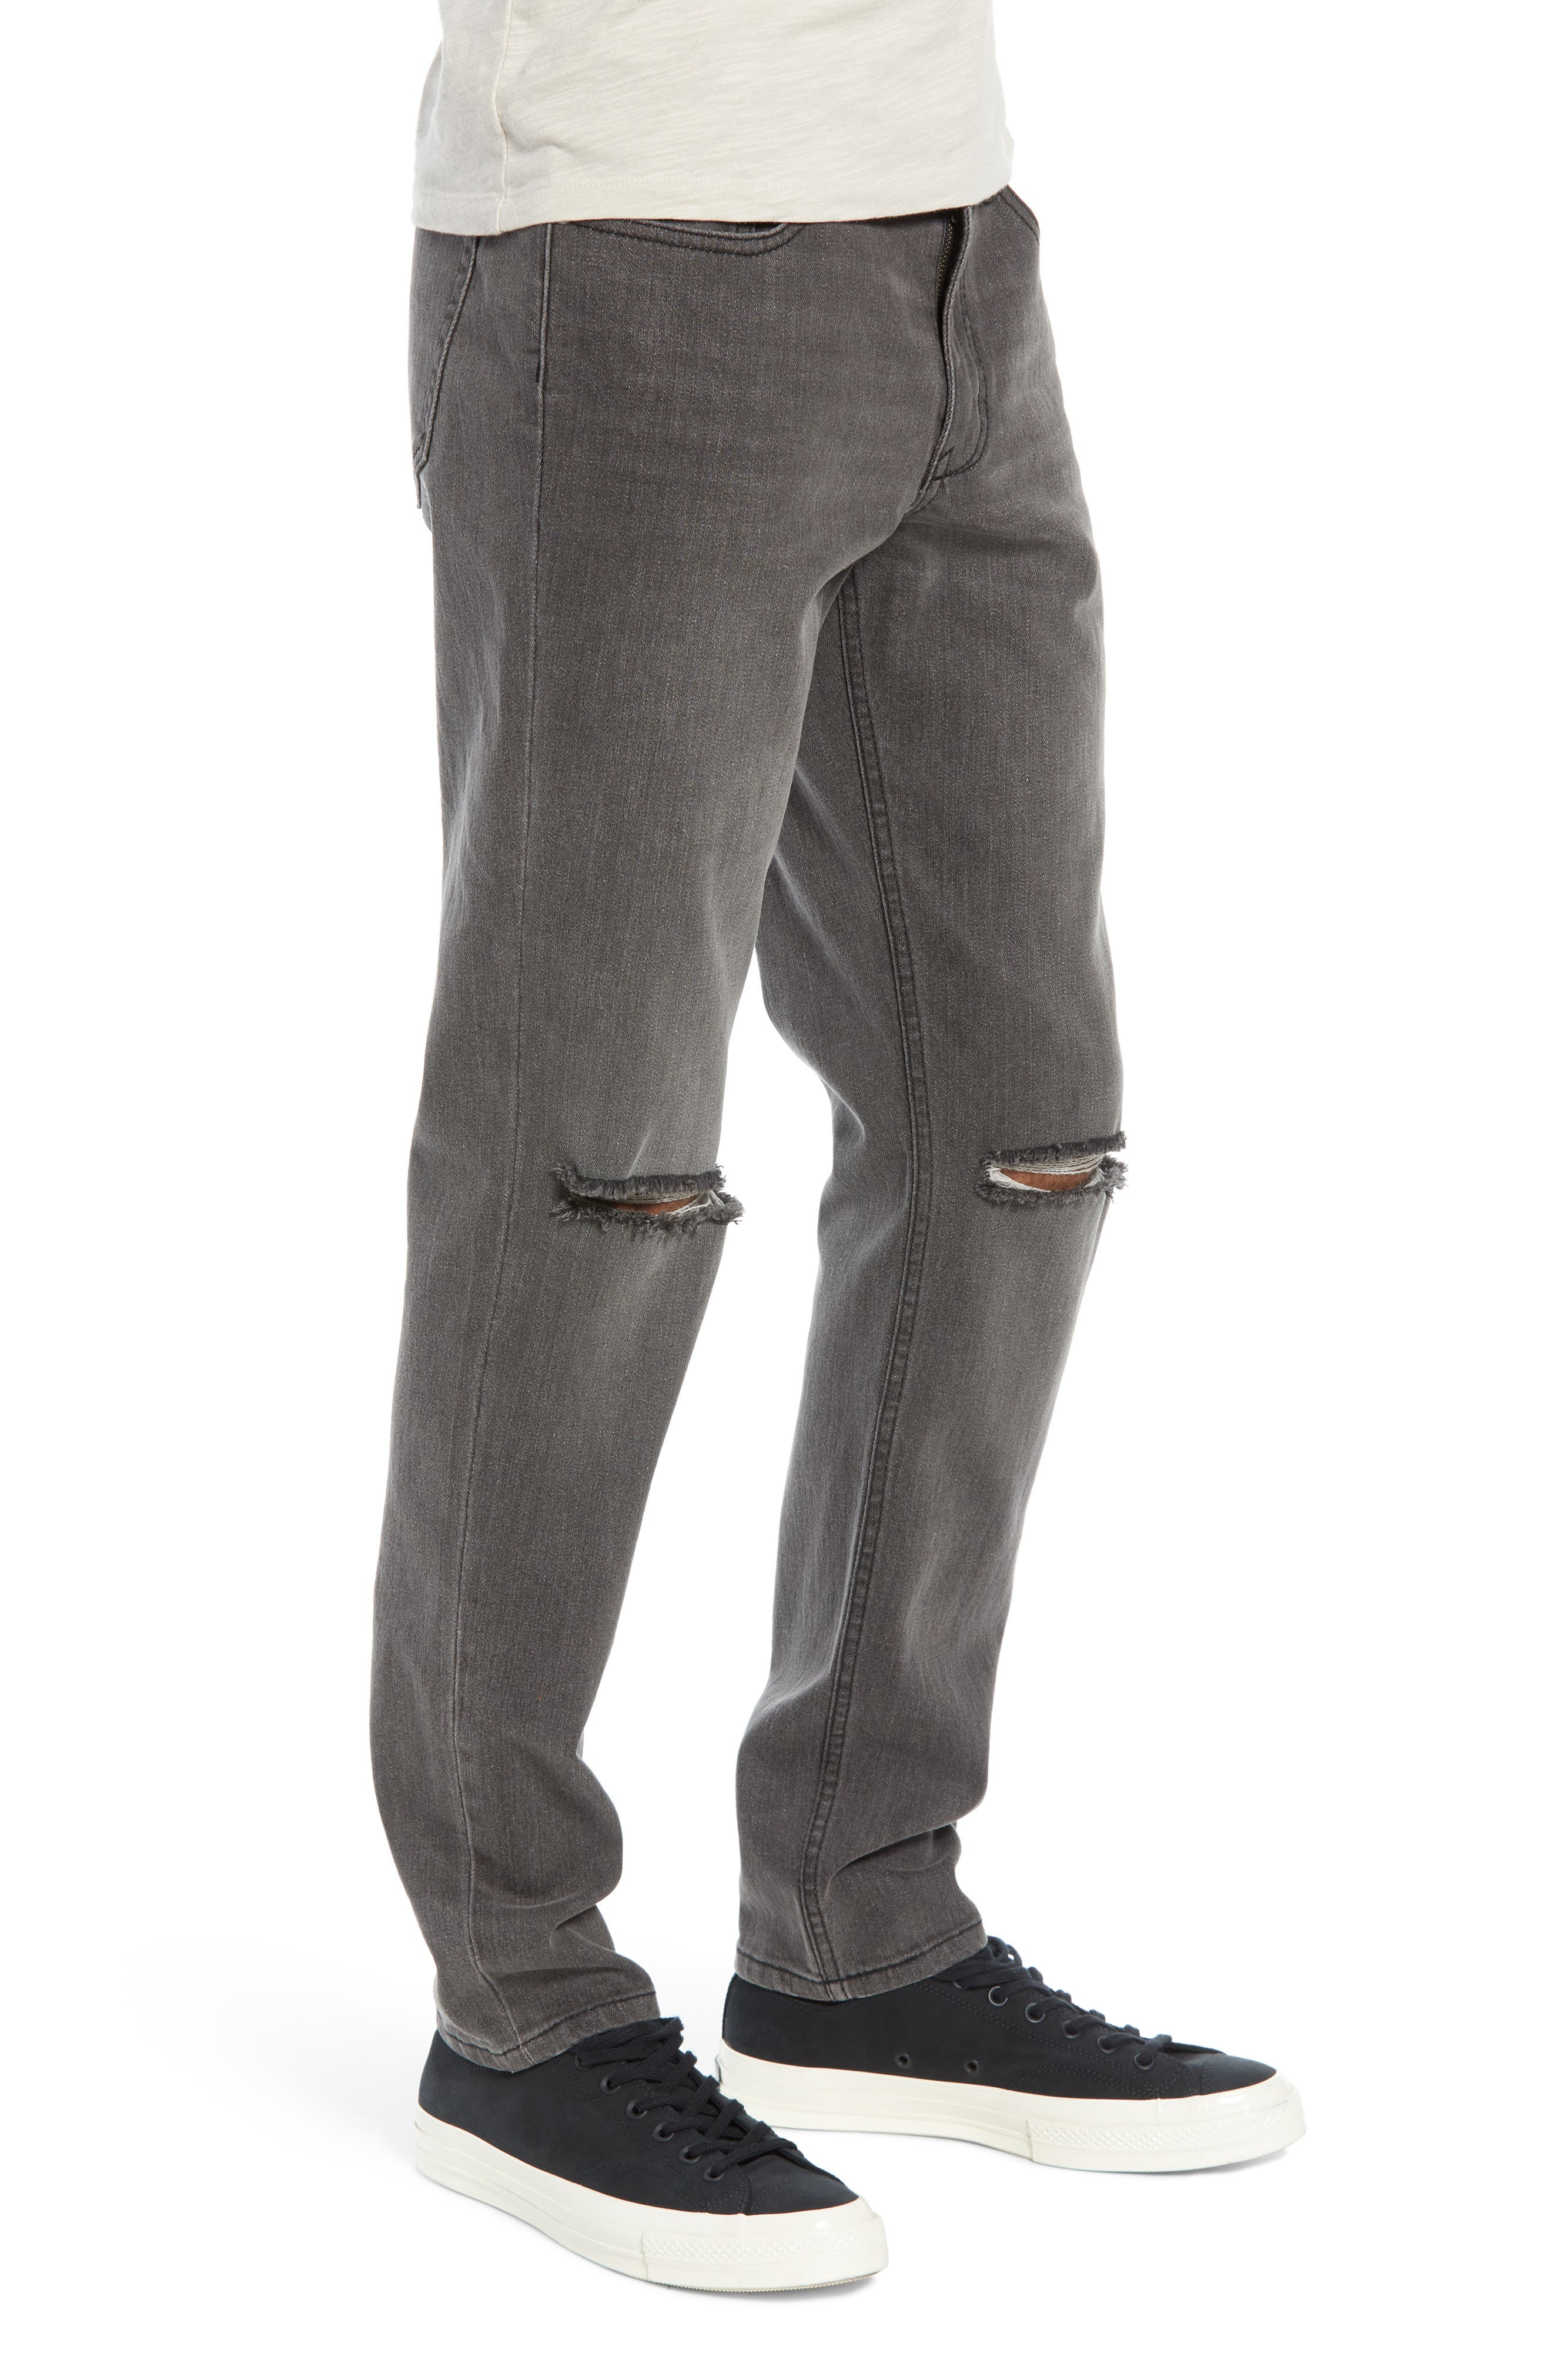 THE RAIL,                             Ripped Skinny Jeans,                             Alternate thumbnail 3, color,                             GREY CHRIS WASH